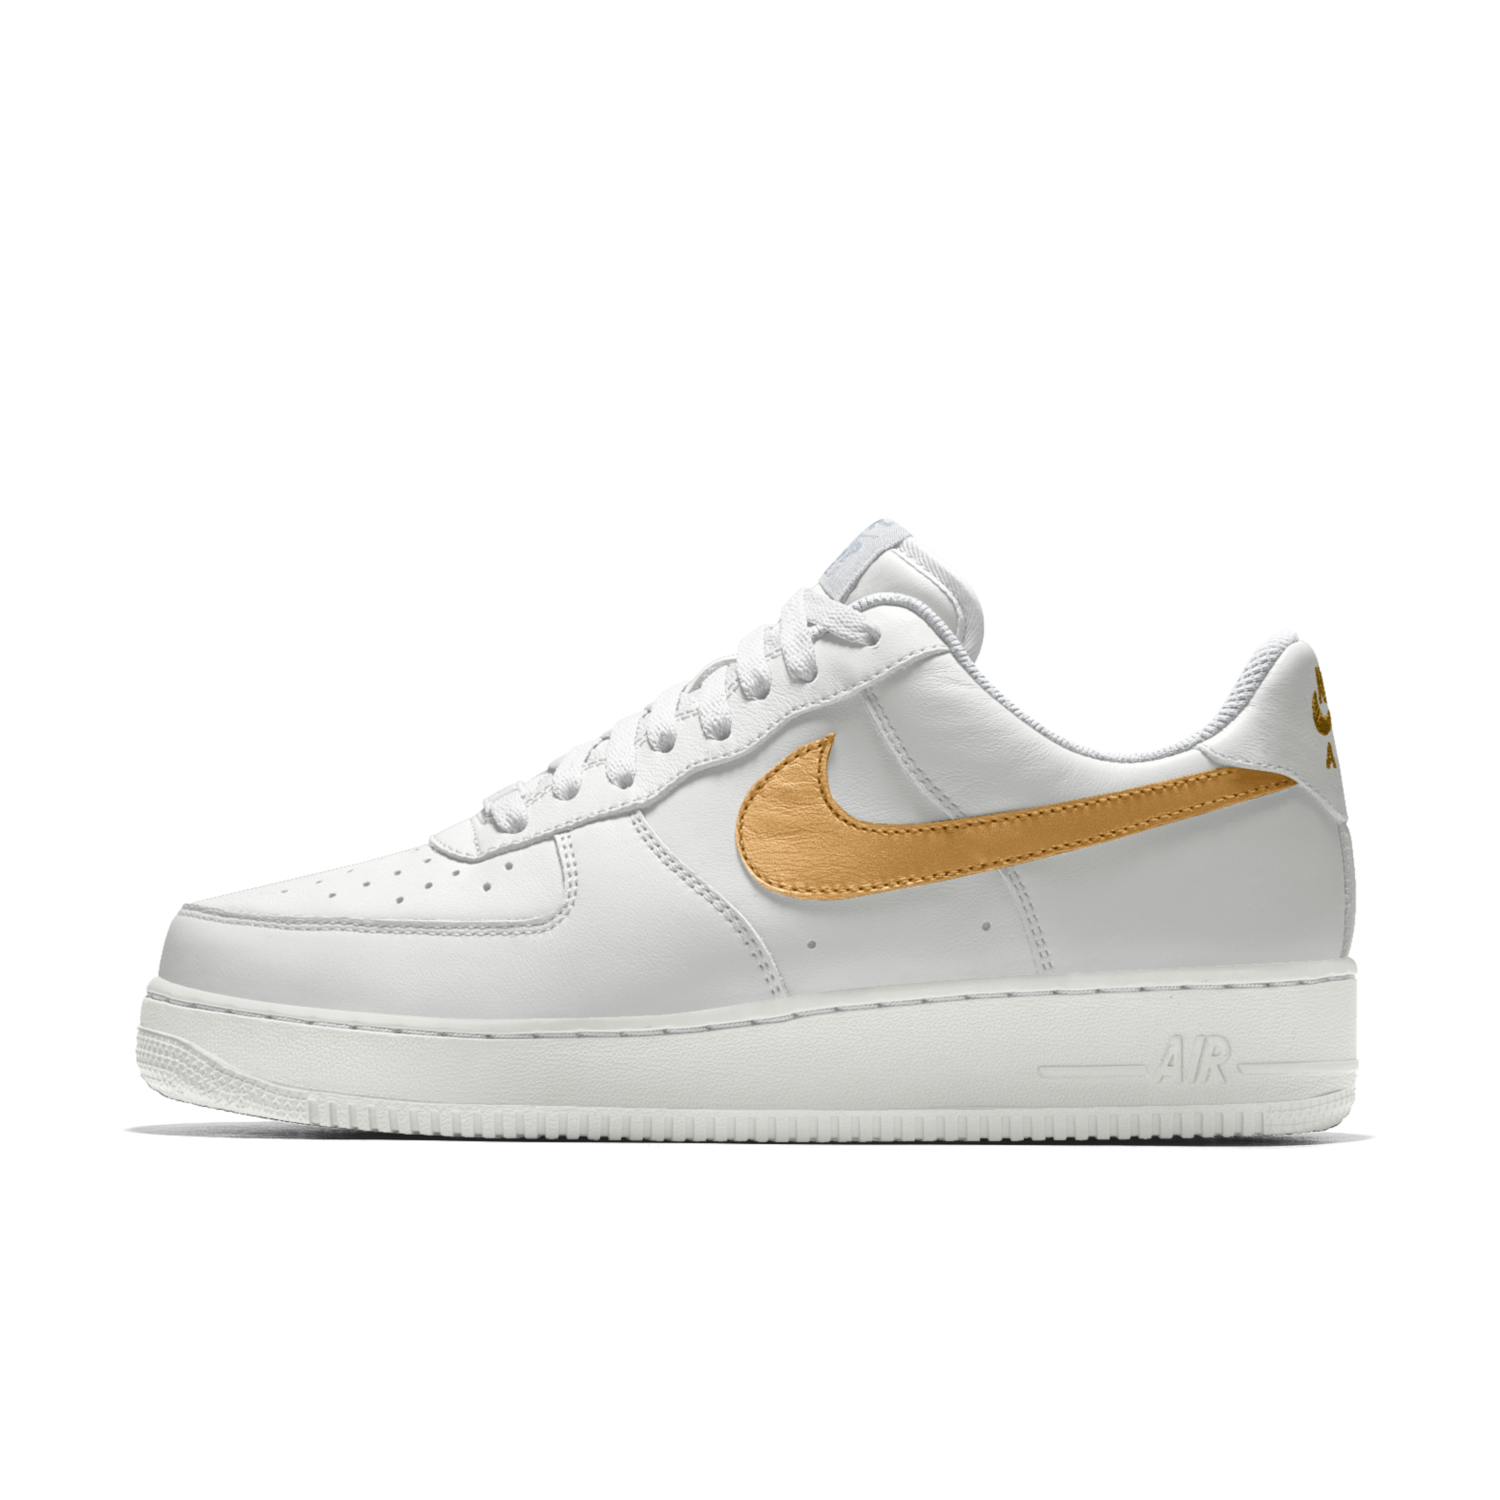 Transparent nike clear. New air force ones